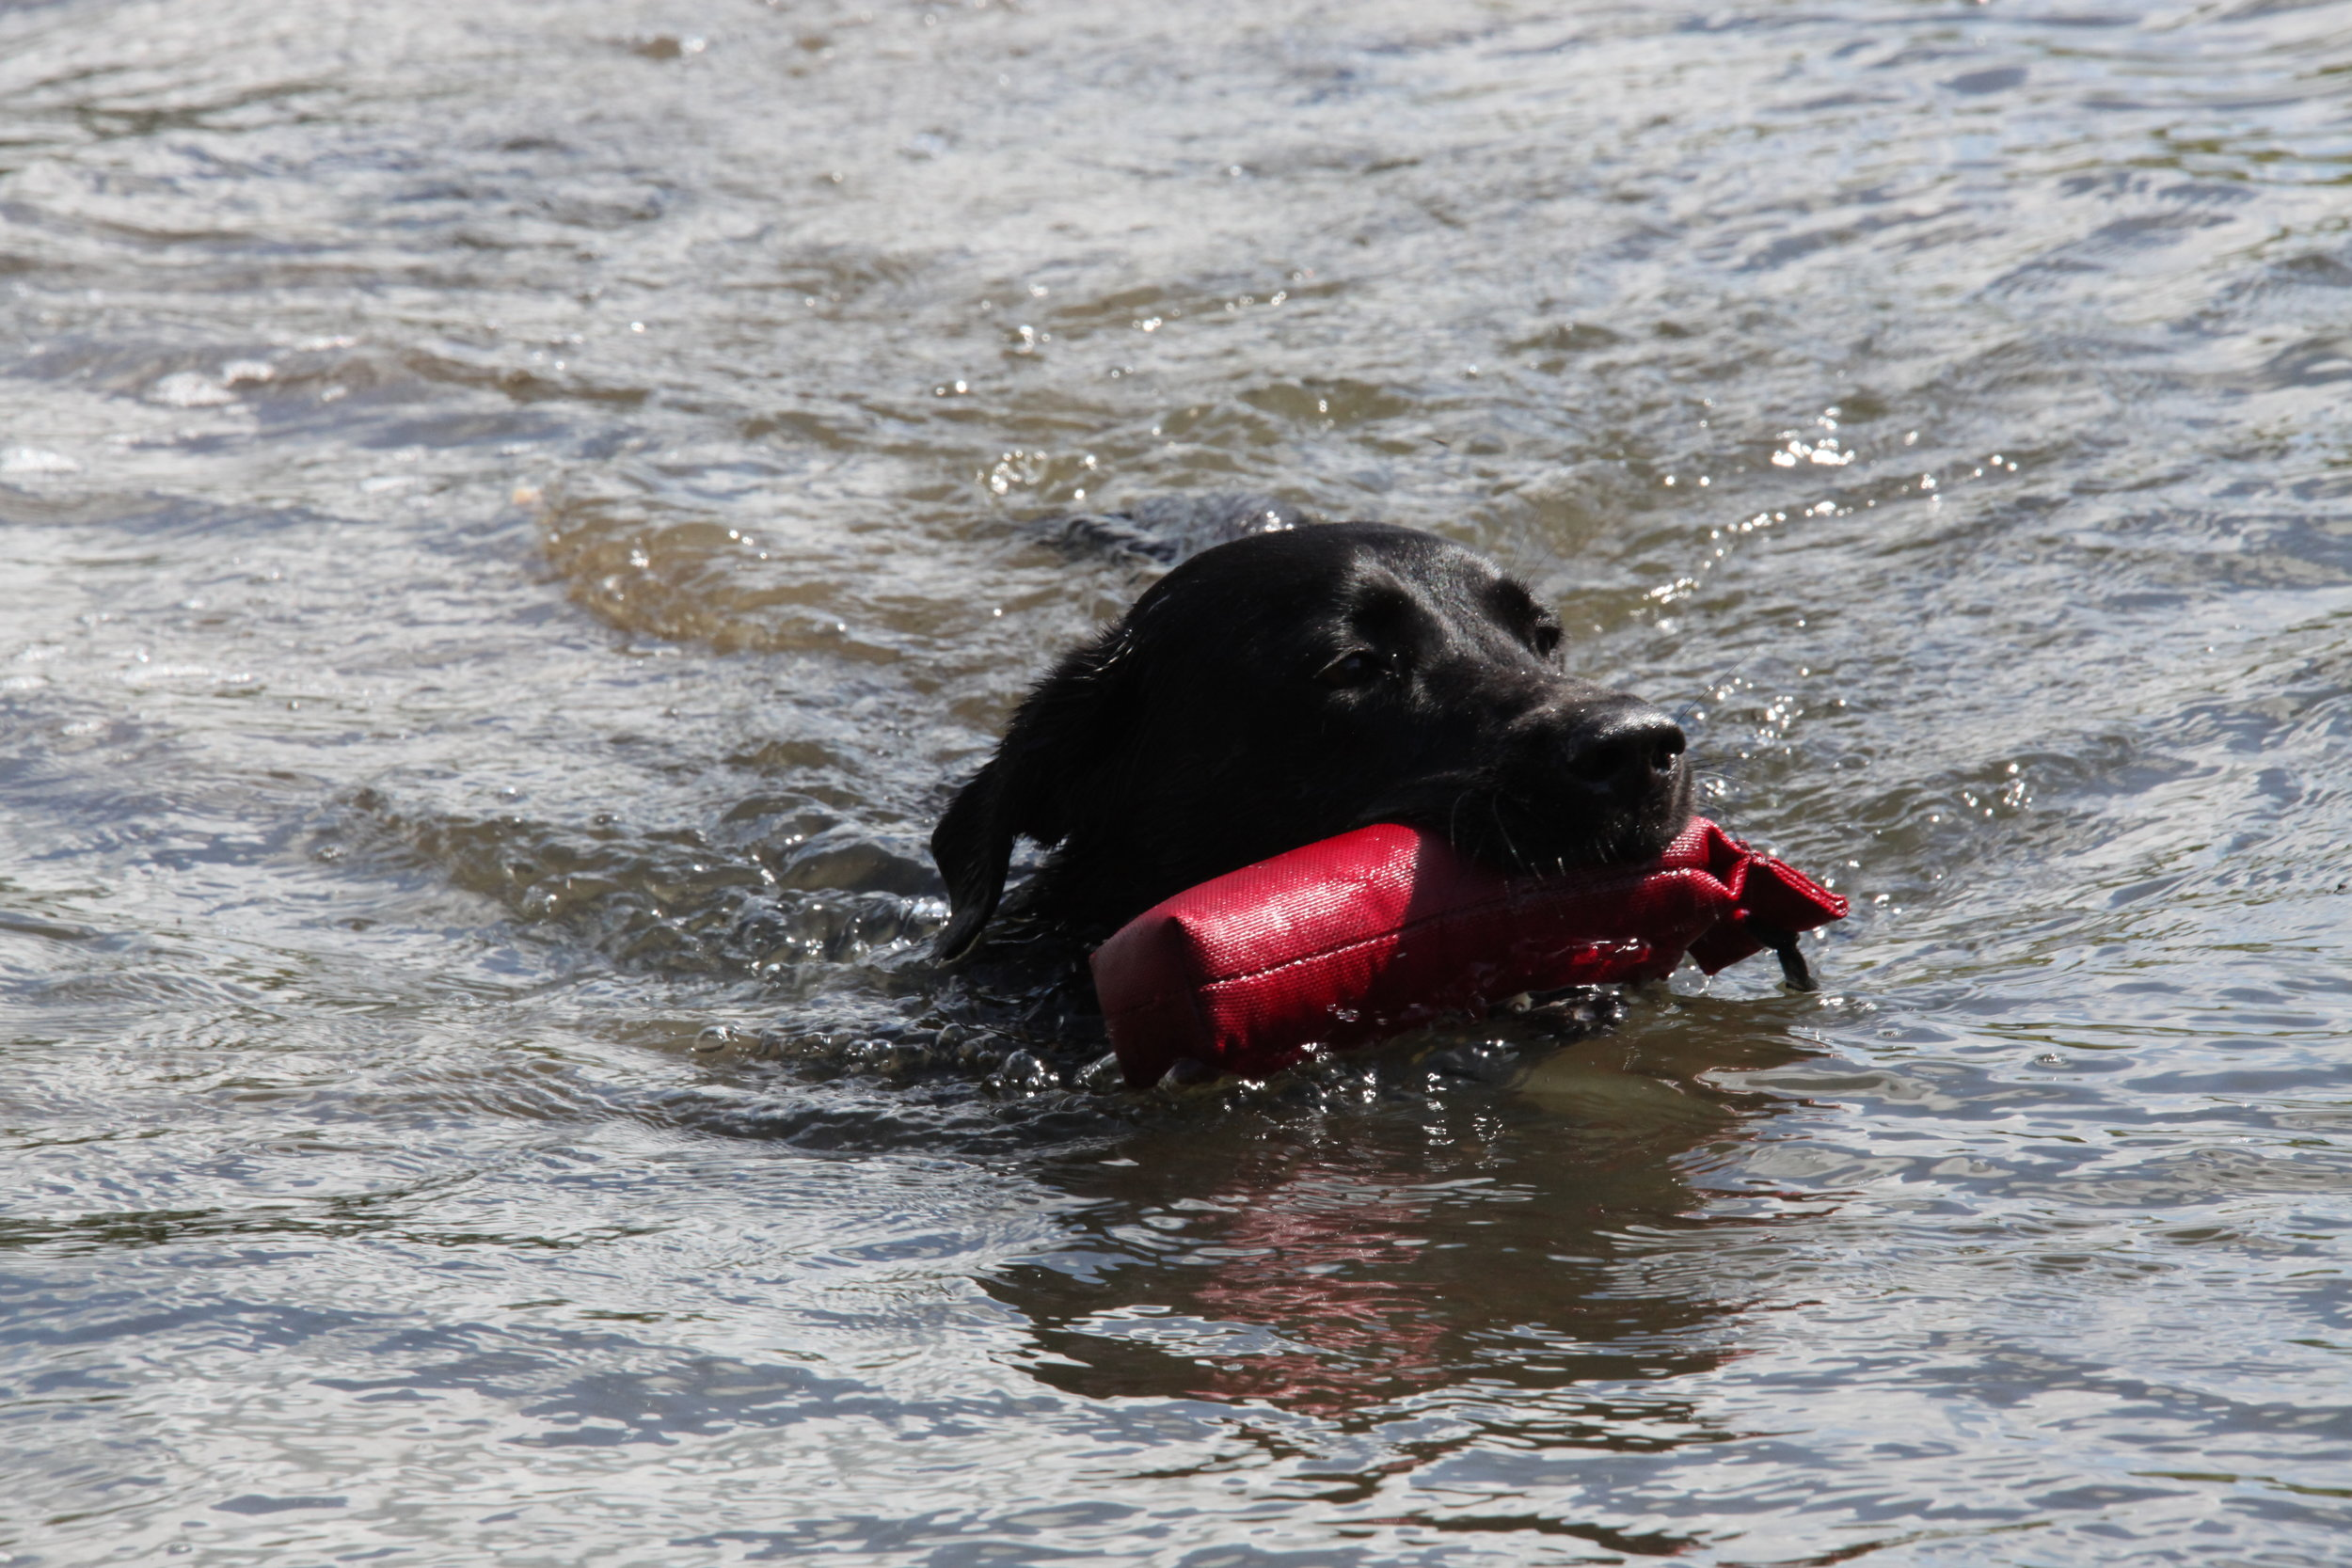 Can I really have too much swimming? - Dogs love swimming